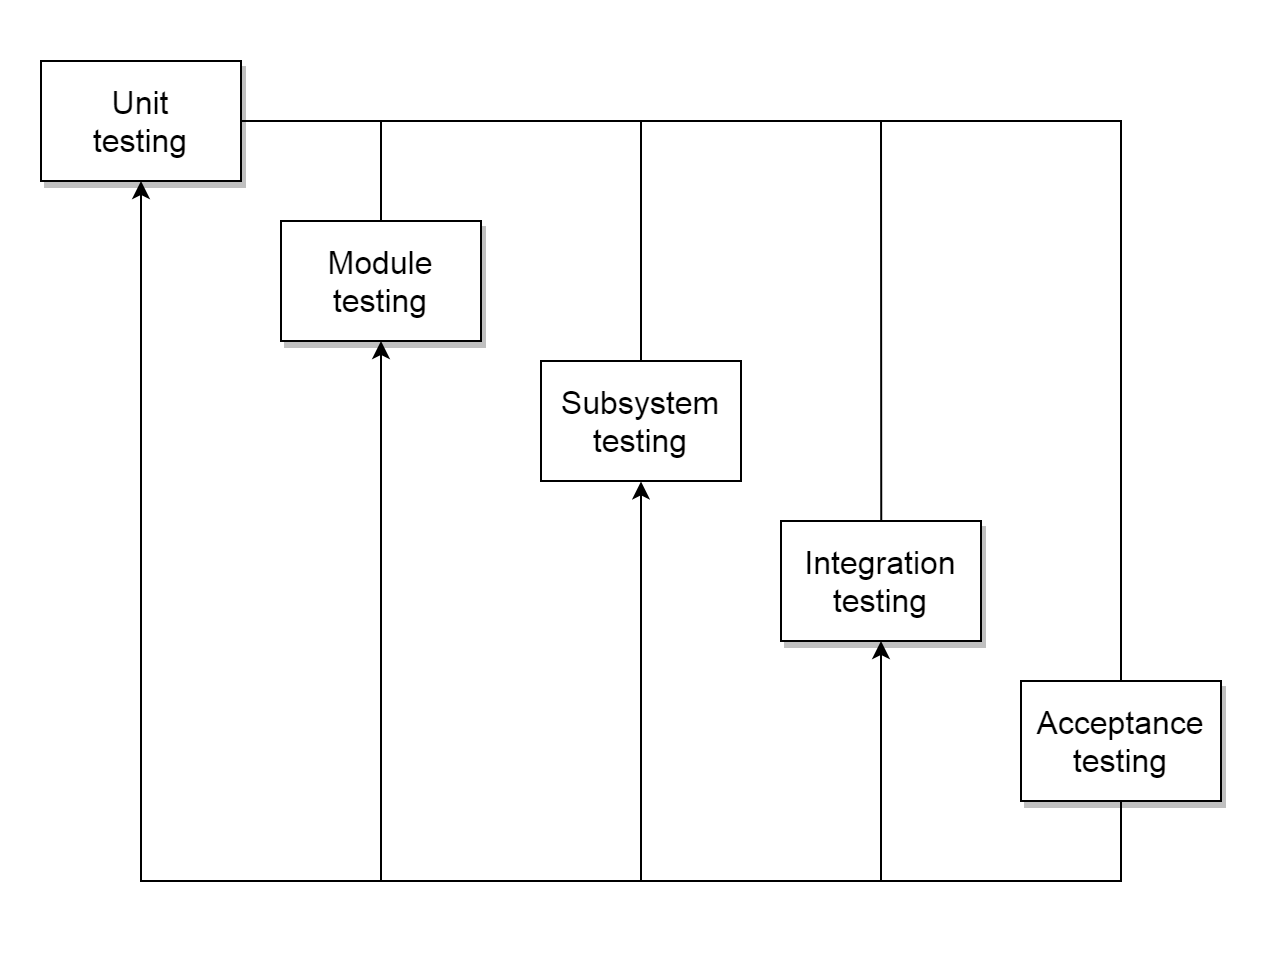 sensors_sommerville-software-engineering-stages-of-testing.png